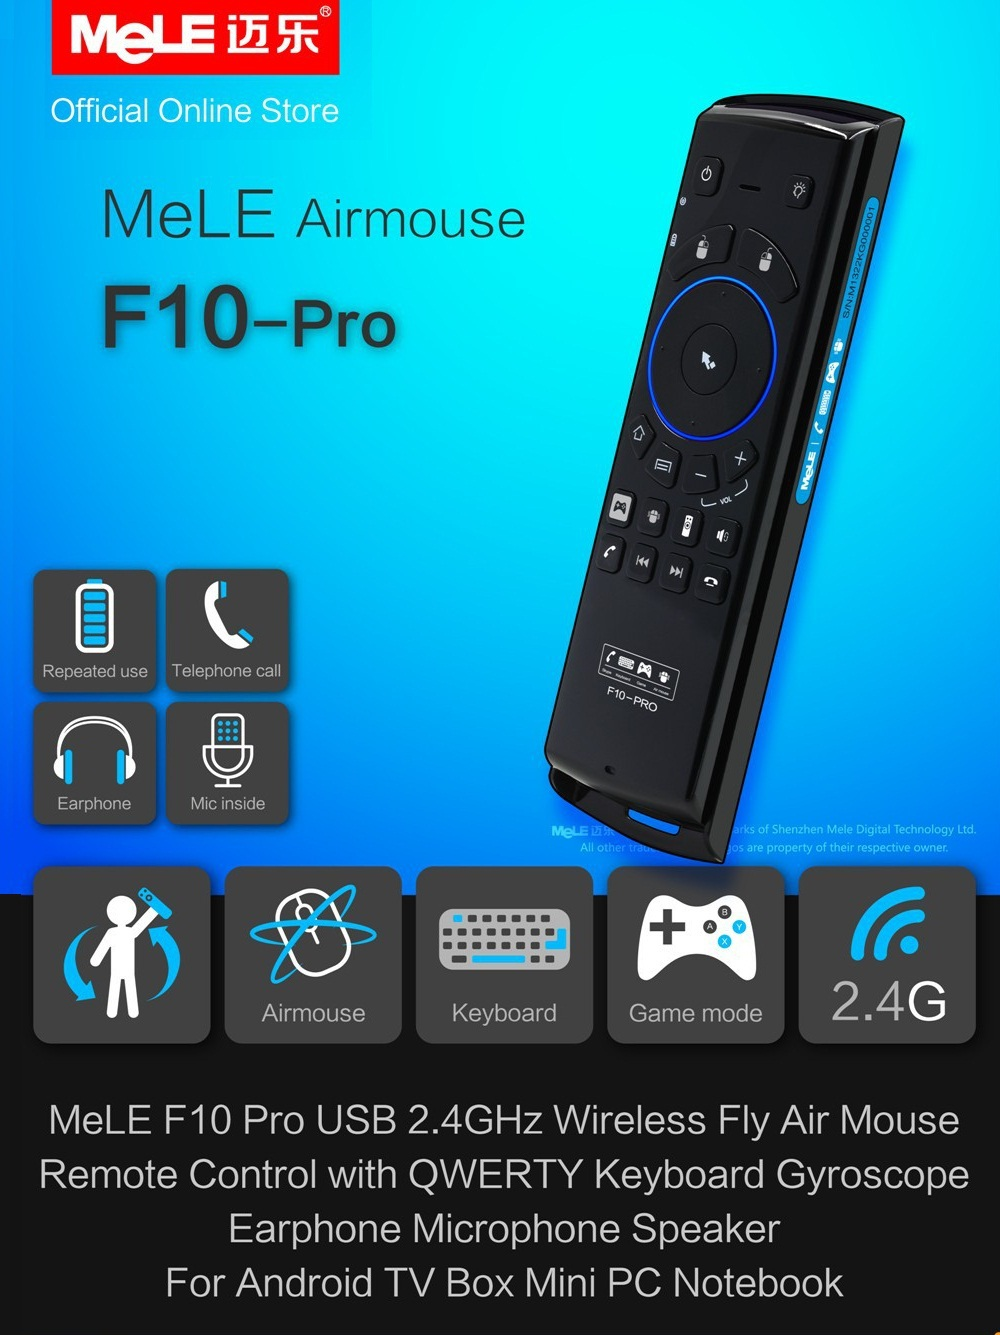 Гаджет  QWERTY Keyboard Fly Air Mouse Wireless Remote Control MeLE F10 Pro Deluxe 2.4GHz  with Earphone Microphone Speaker for gaming None Компьютер & сеть